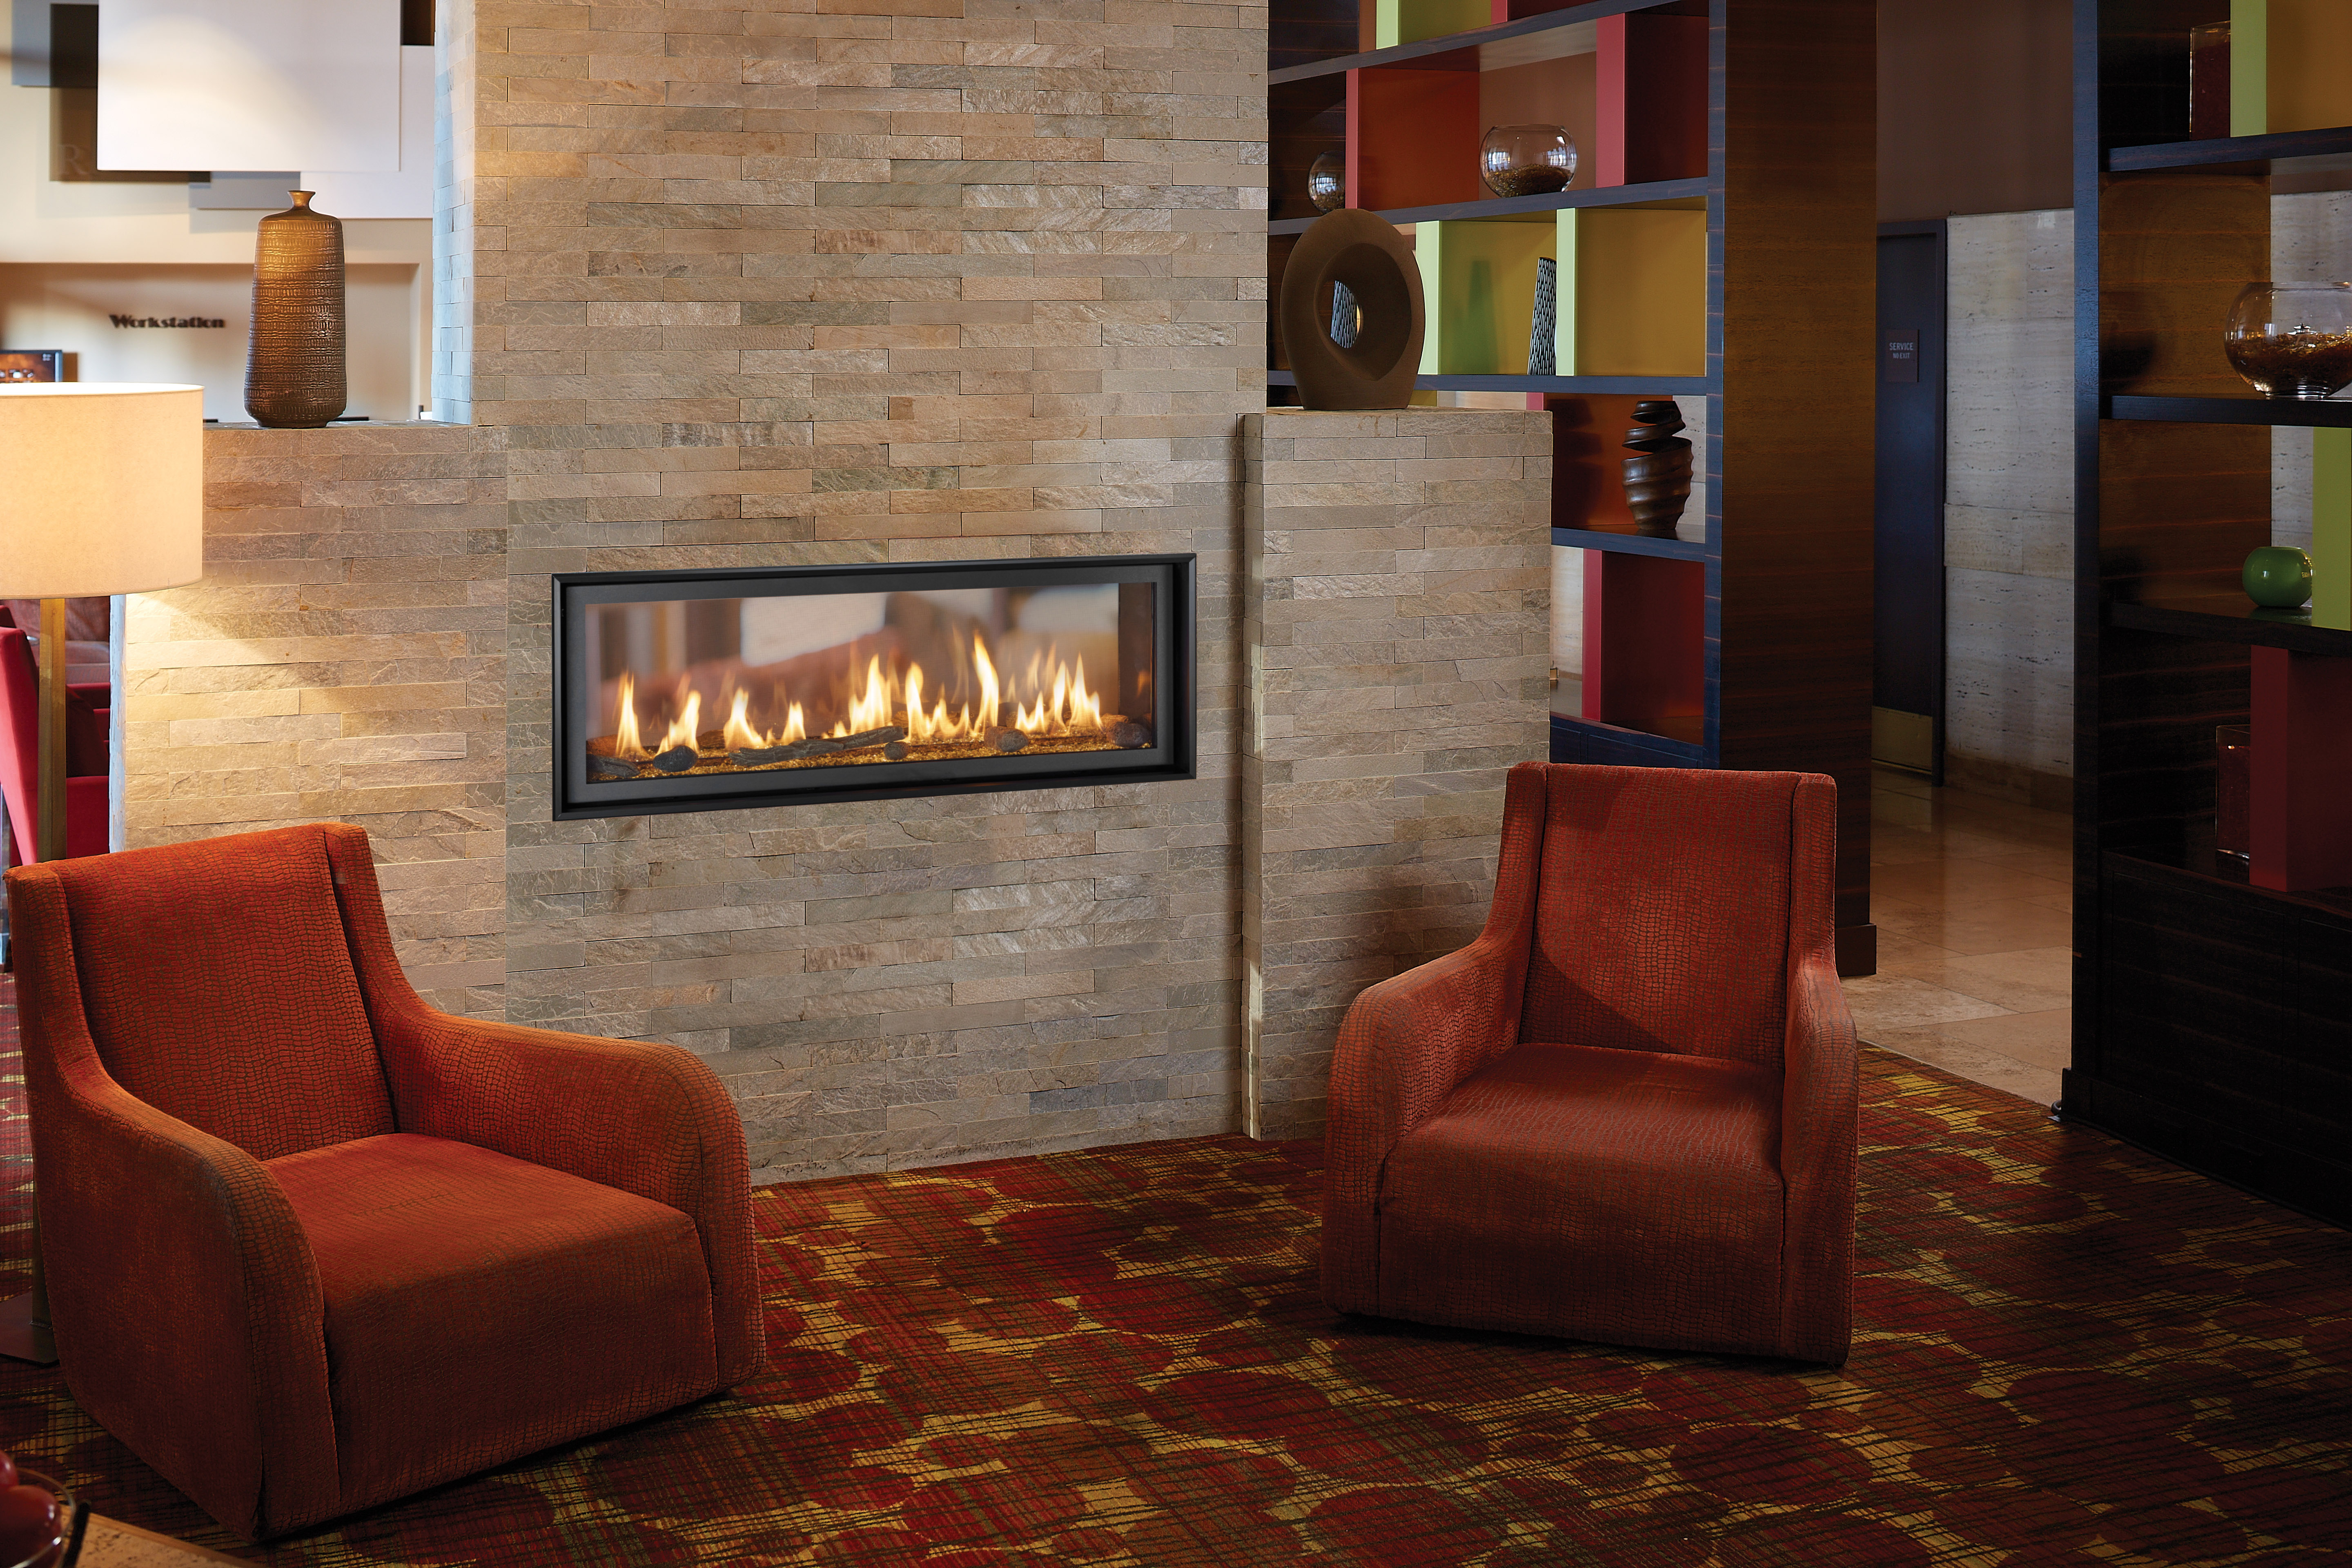 Another Image of the modern 4415 ST gas fireplace made by Fireplace Xtordinair featuring a modern linear design.